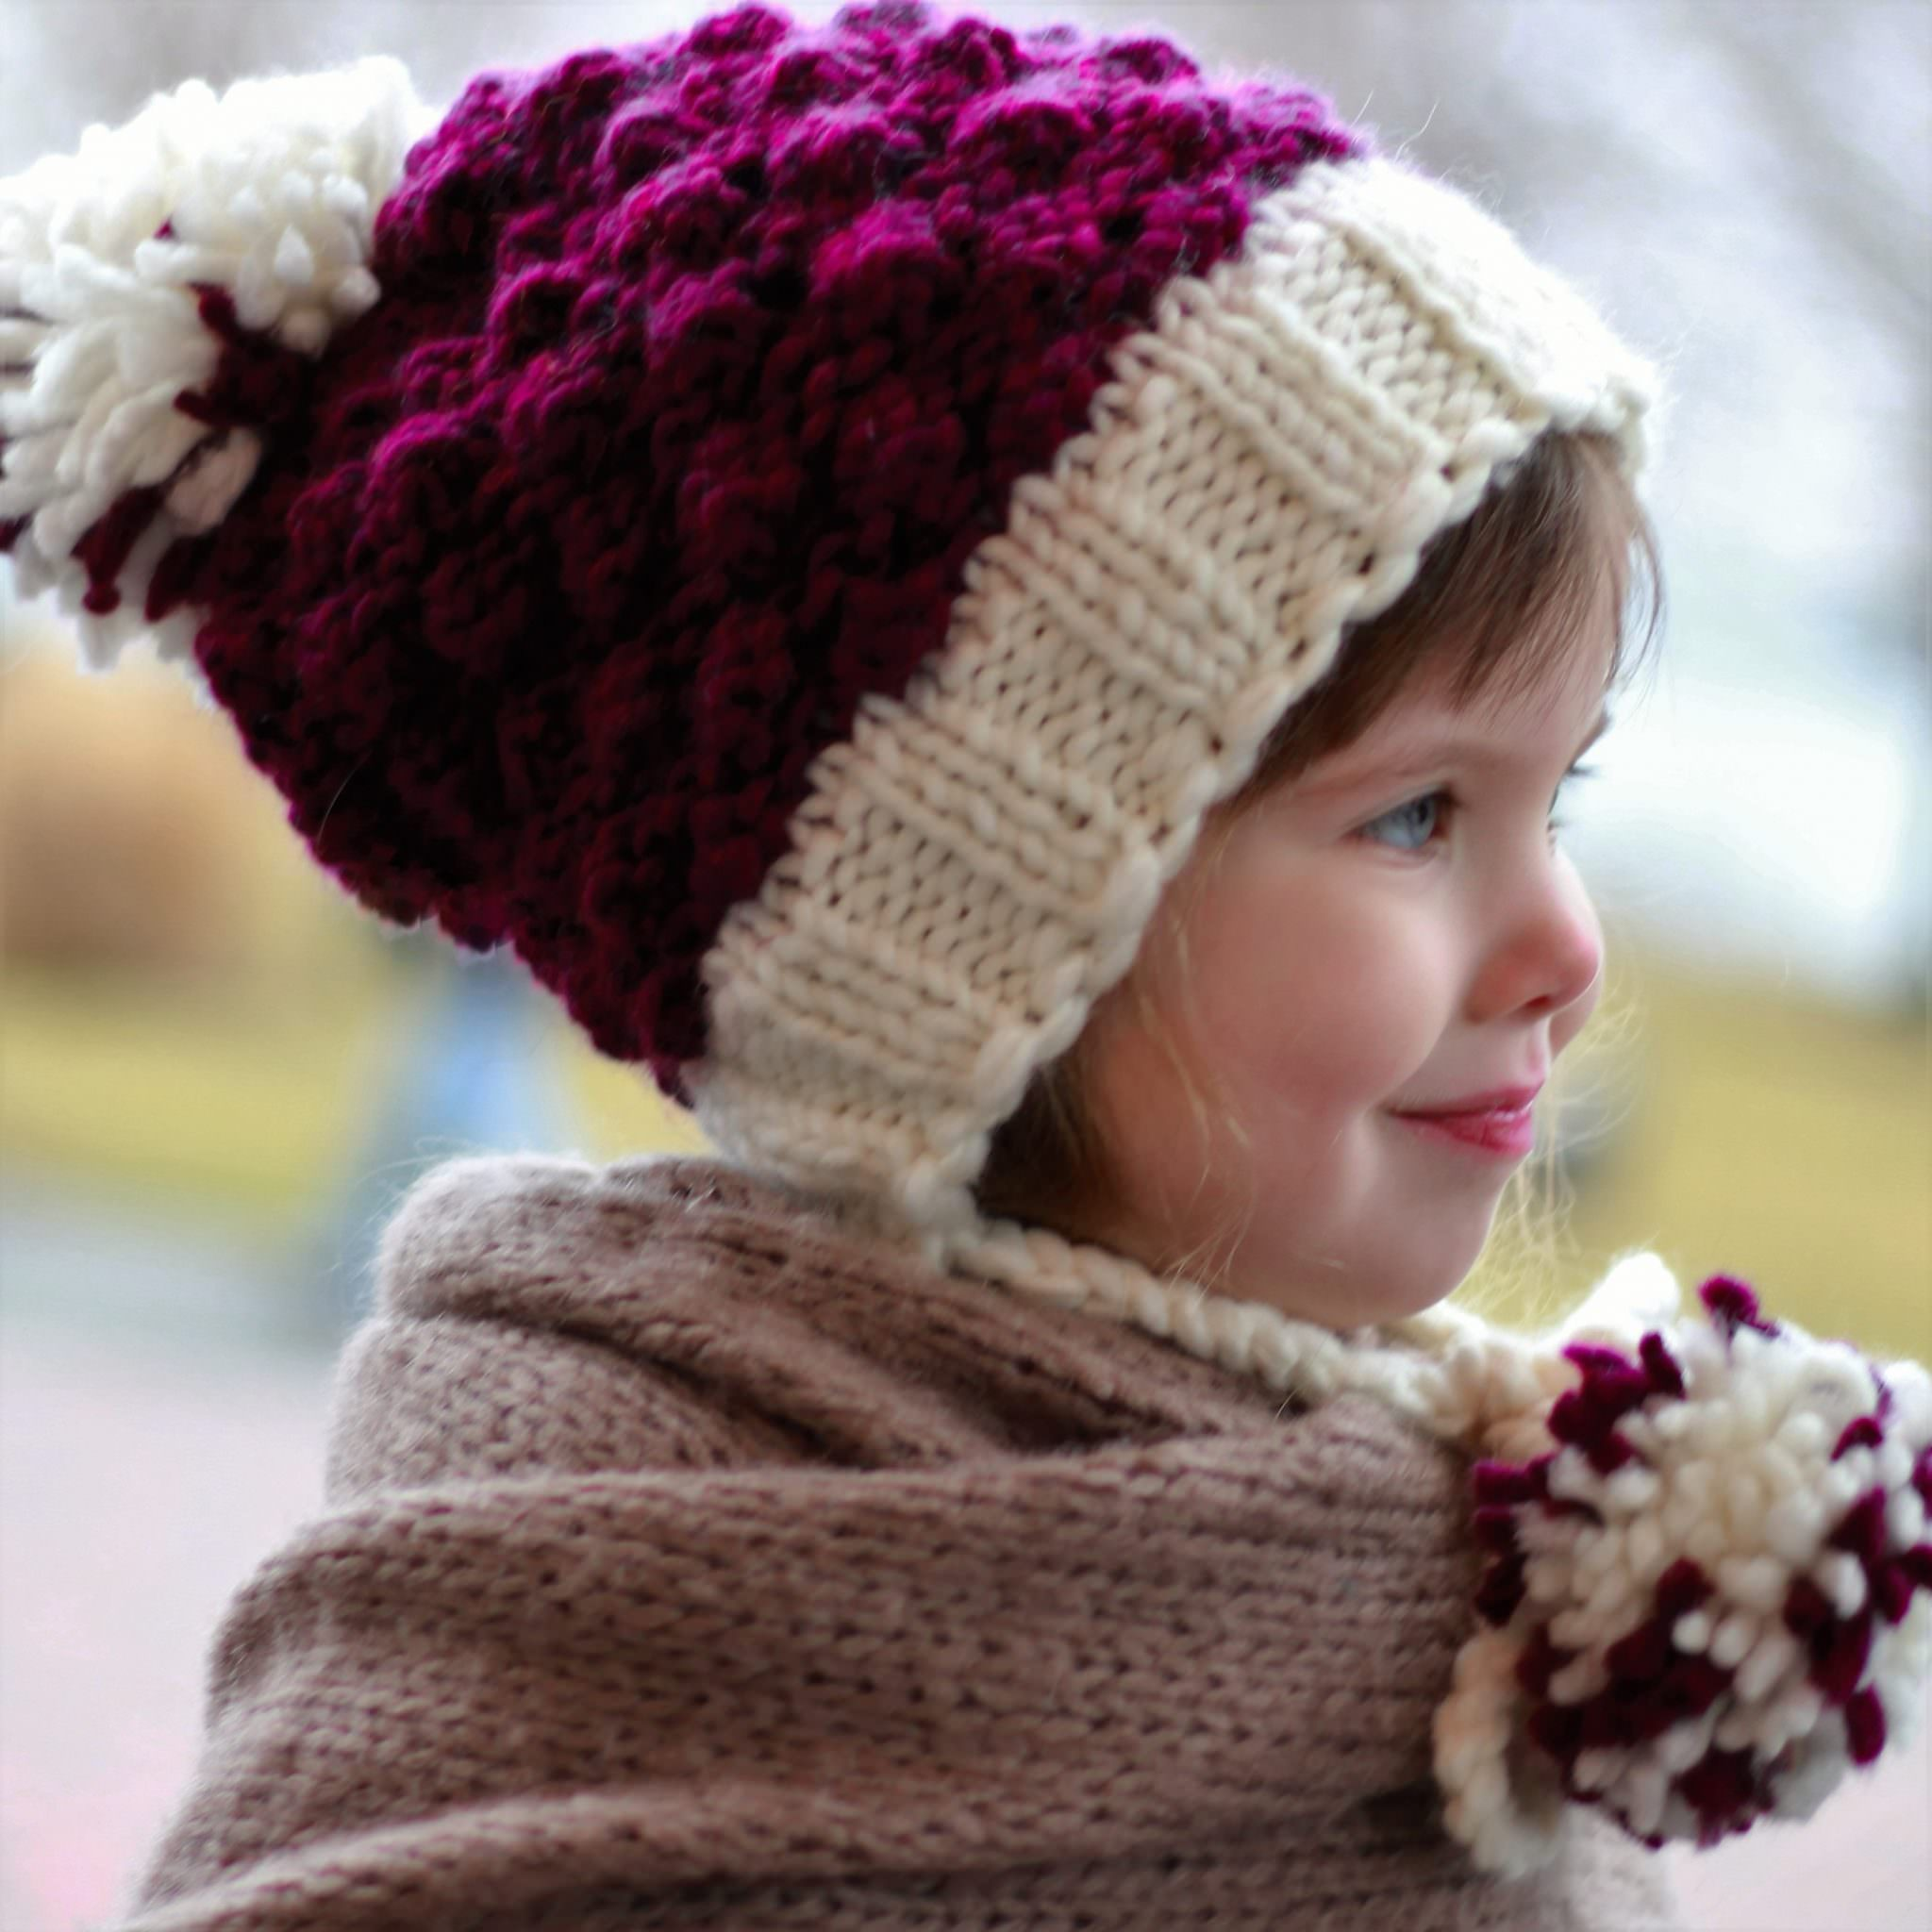 DOROTHY / EARFLAP HAT – KNITTING PATTERN - The Easy Design